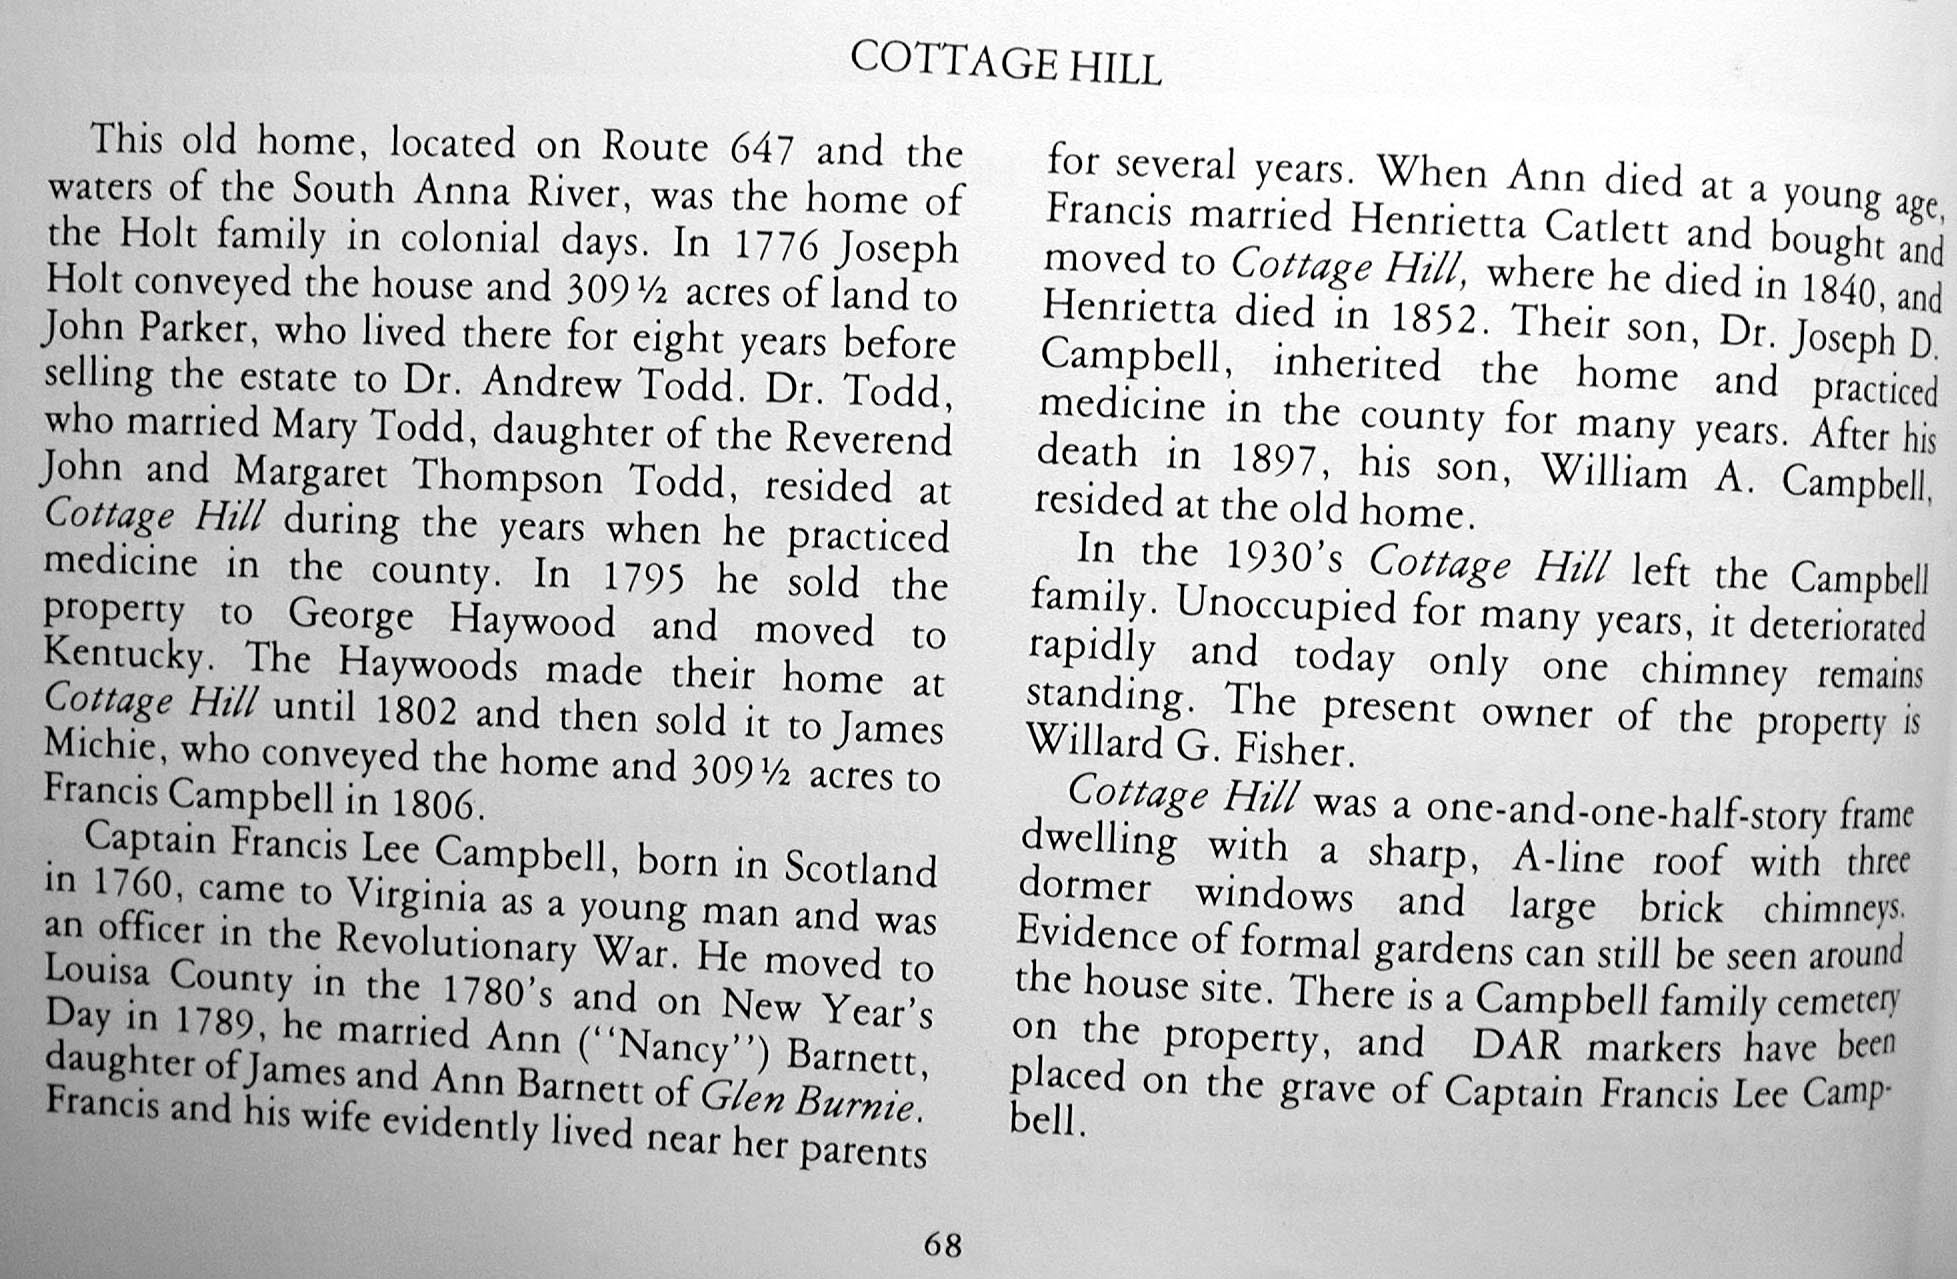 Text describing Cottage Hill